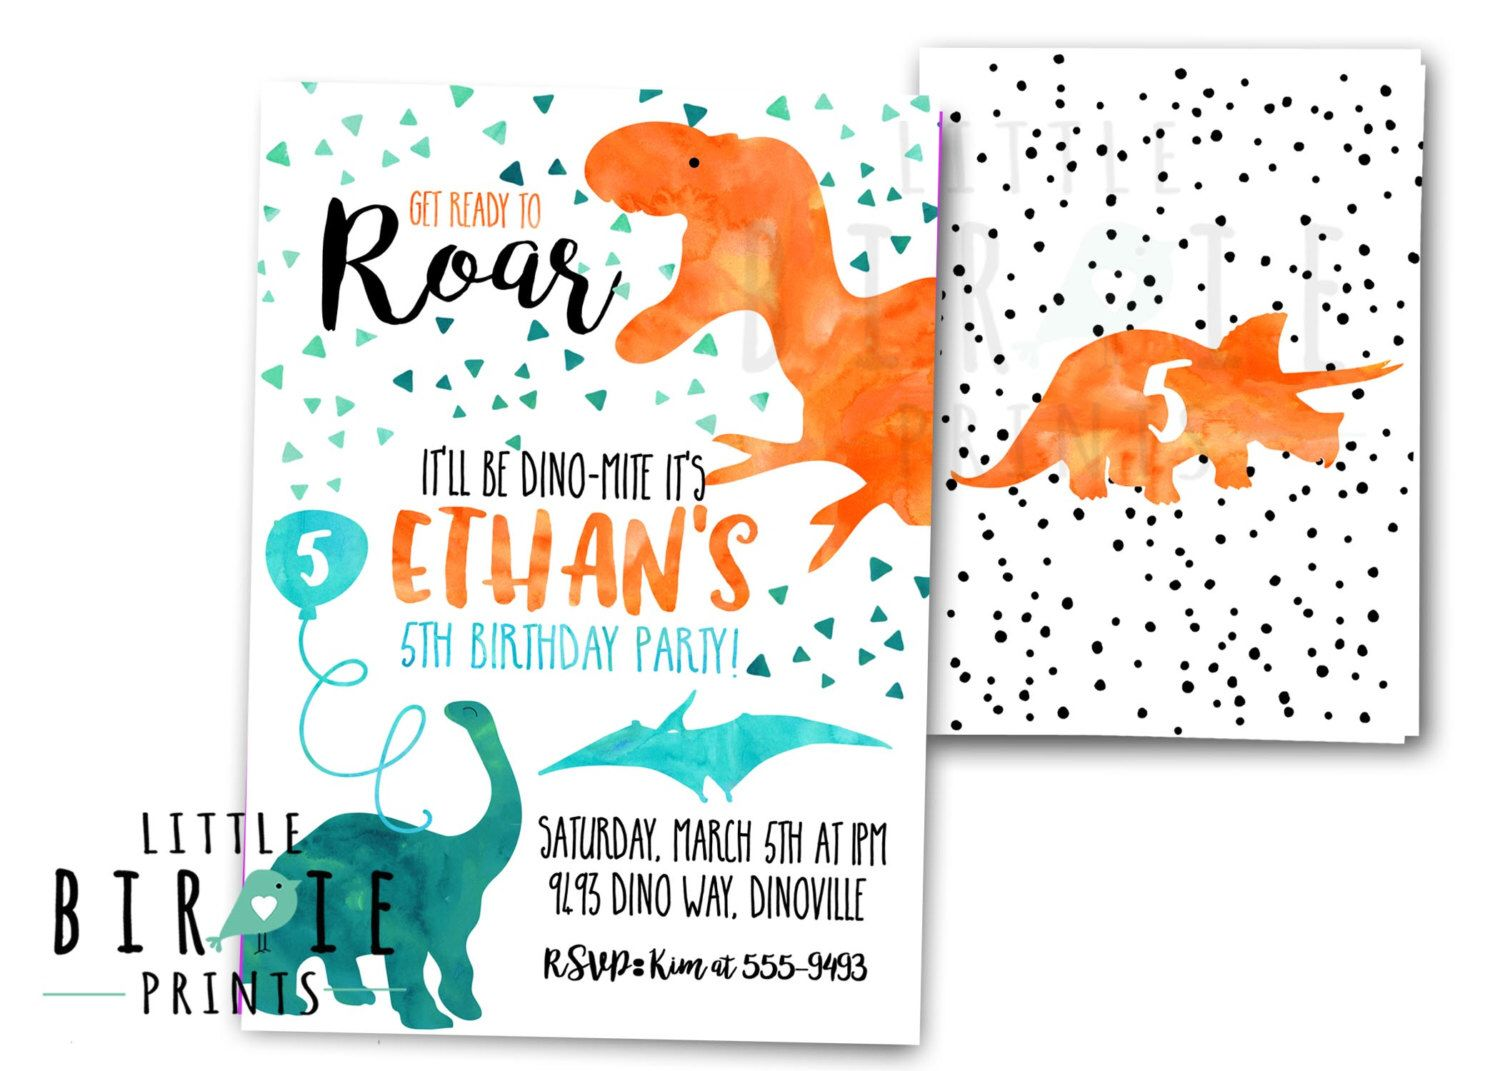 Dinosaur invitation dinosaur birthday party invitation dinosaur dinosaur invitation dinosaur birthday party invitation dinosaur birthday party printable invitation watercolor dinosaur invitation by littlebirdieprints stopboris Images